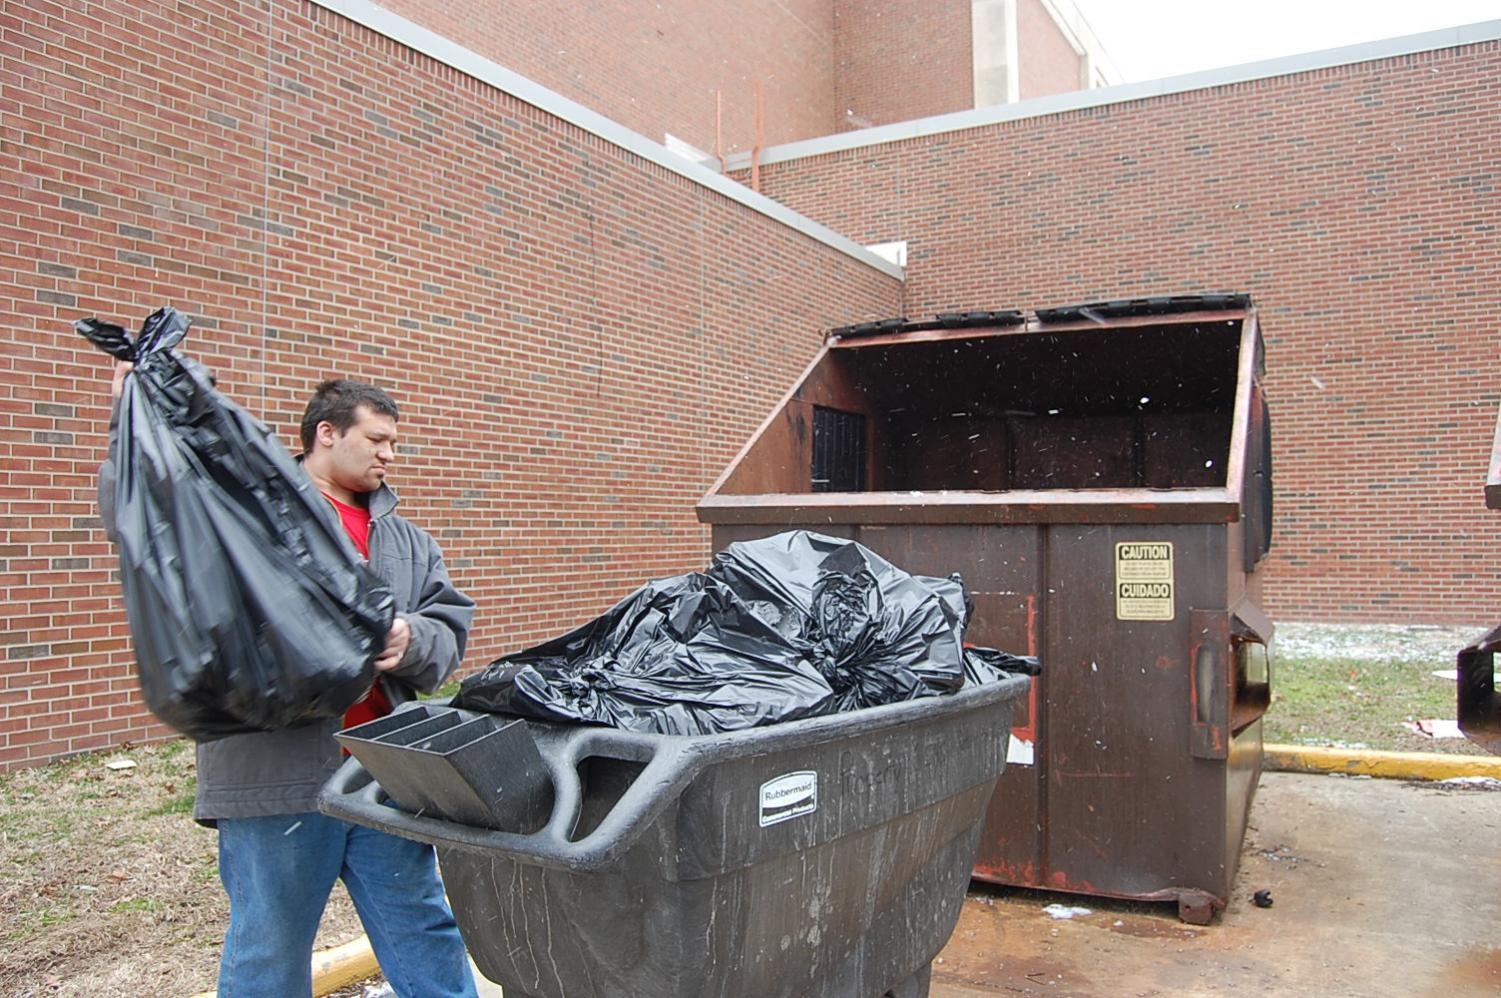 Junior Daniel McDonald takes out the trash during second lunch on Thursday, March 8.